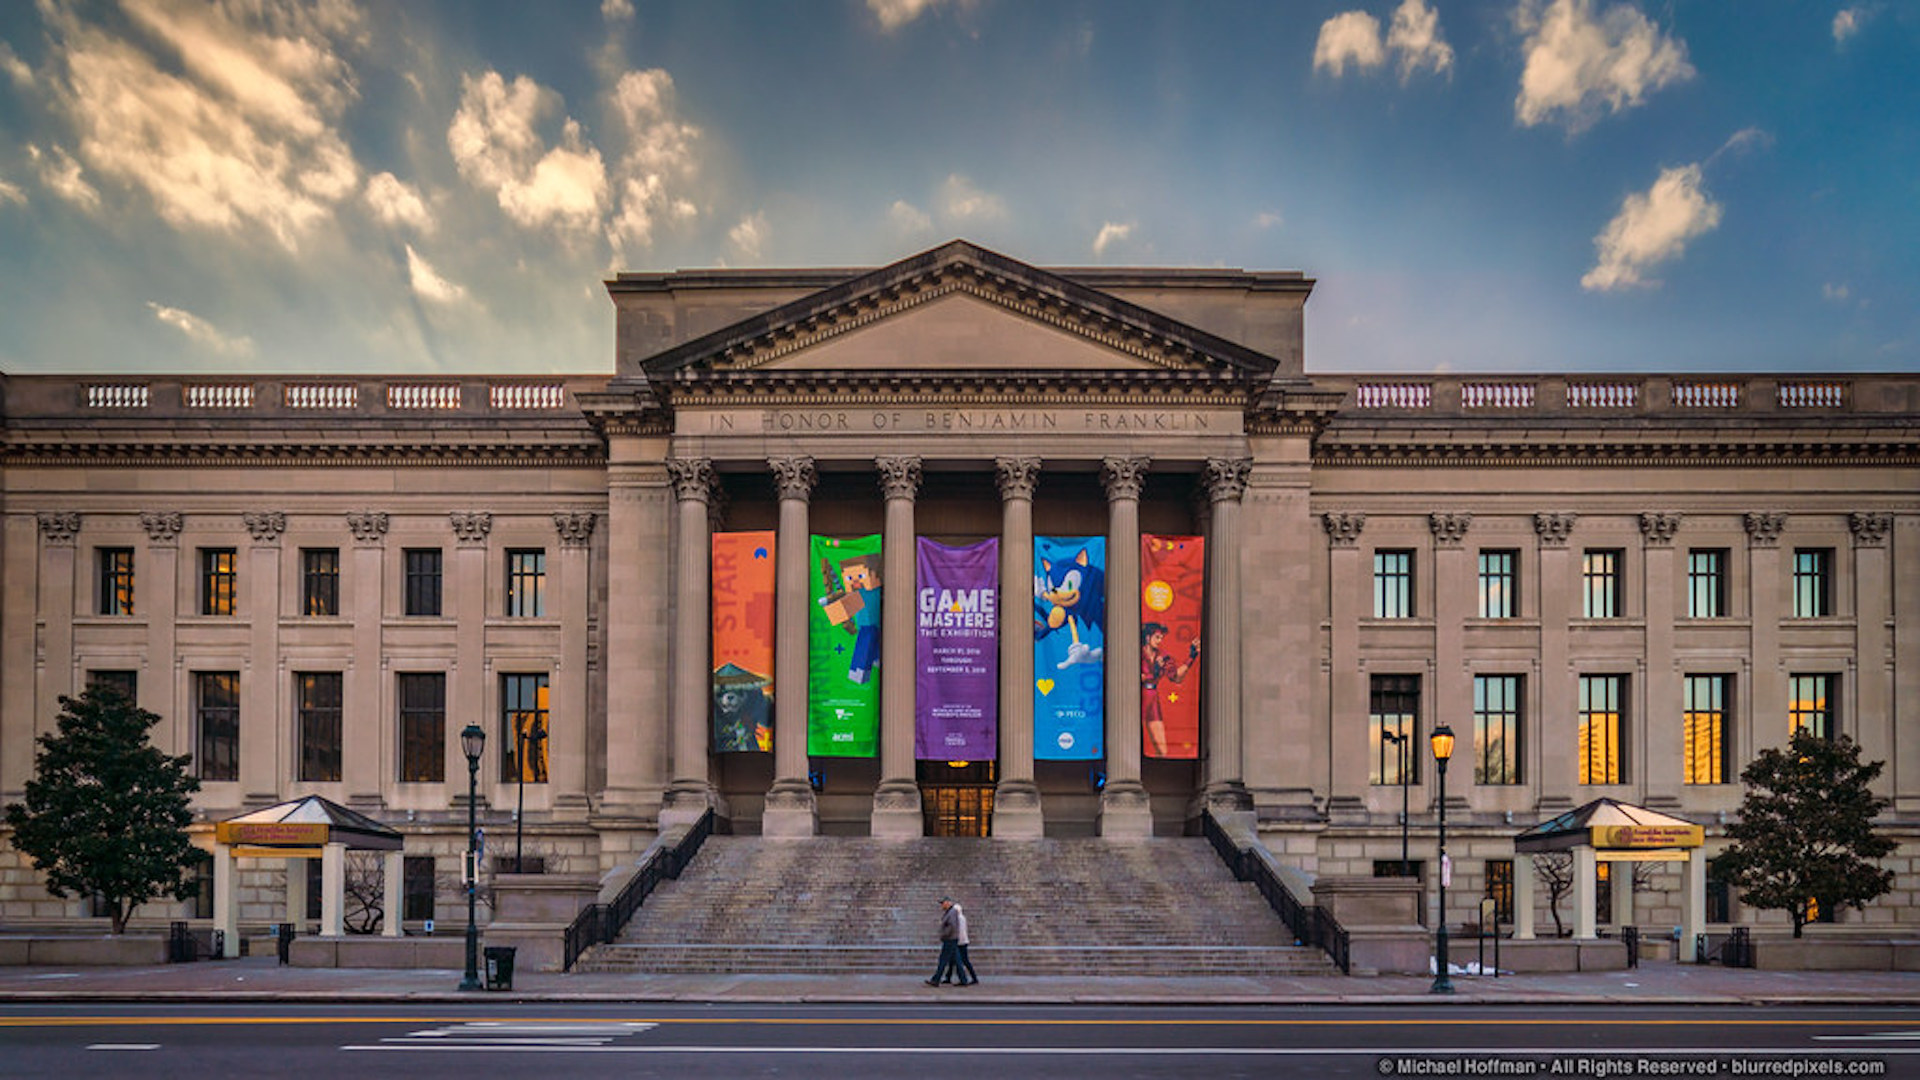 Image courtesy of The Franklin Institute